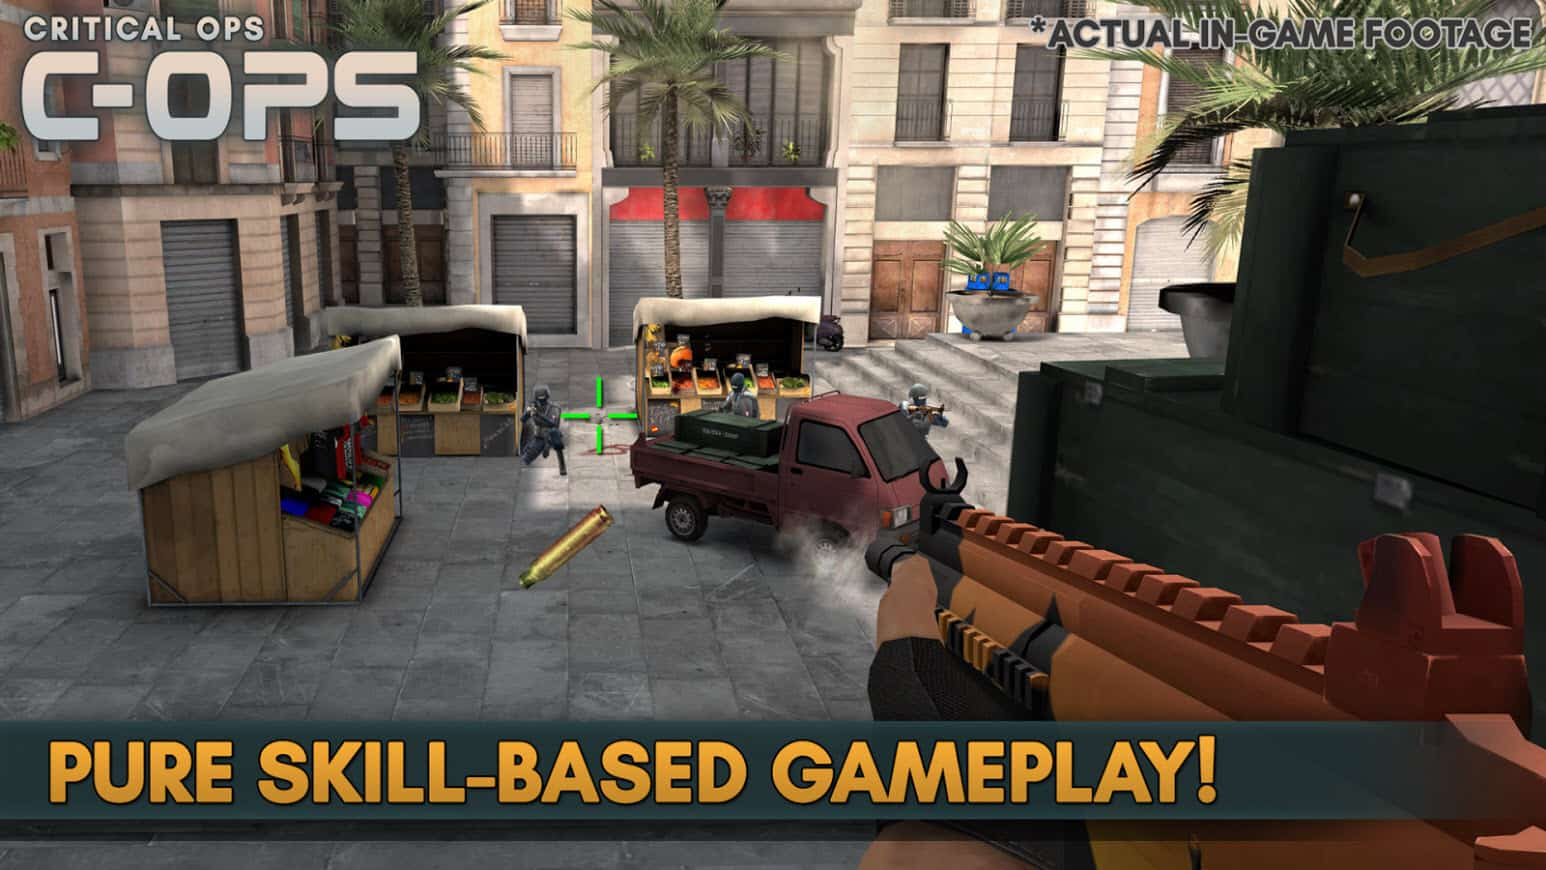 mobile games like Call of Duty